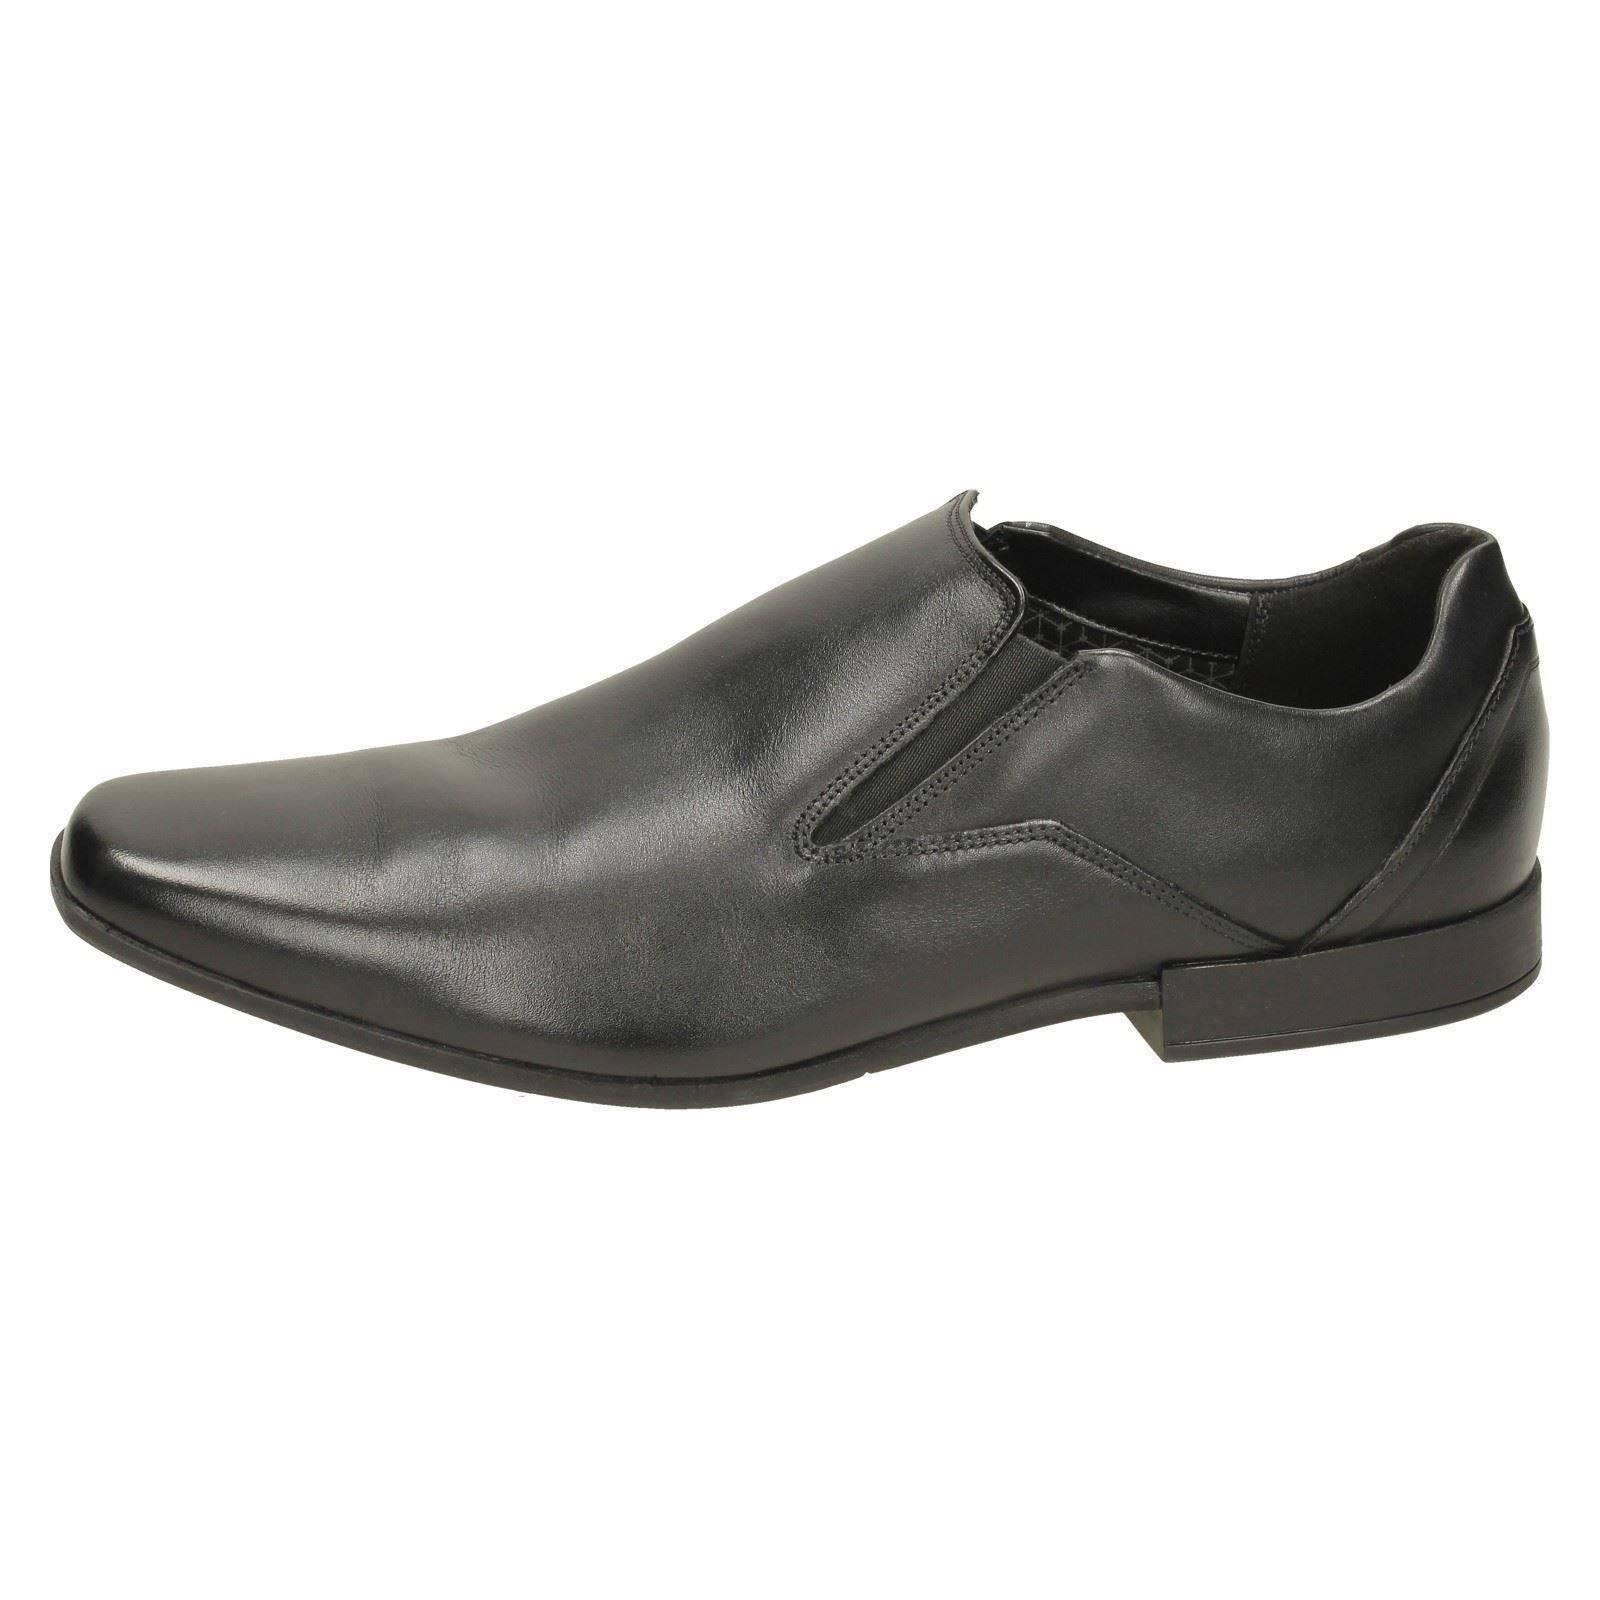 Formal hombre On Slip negro Glement de Squared cuero Clarks Toe zapatos para 5Rq5wE